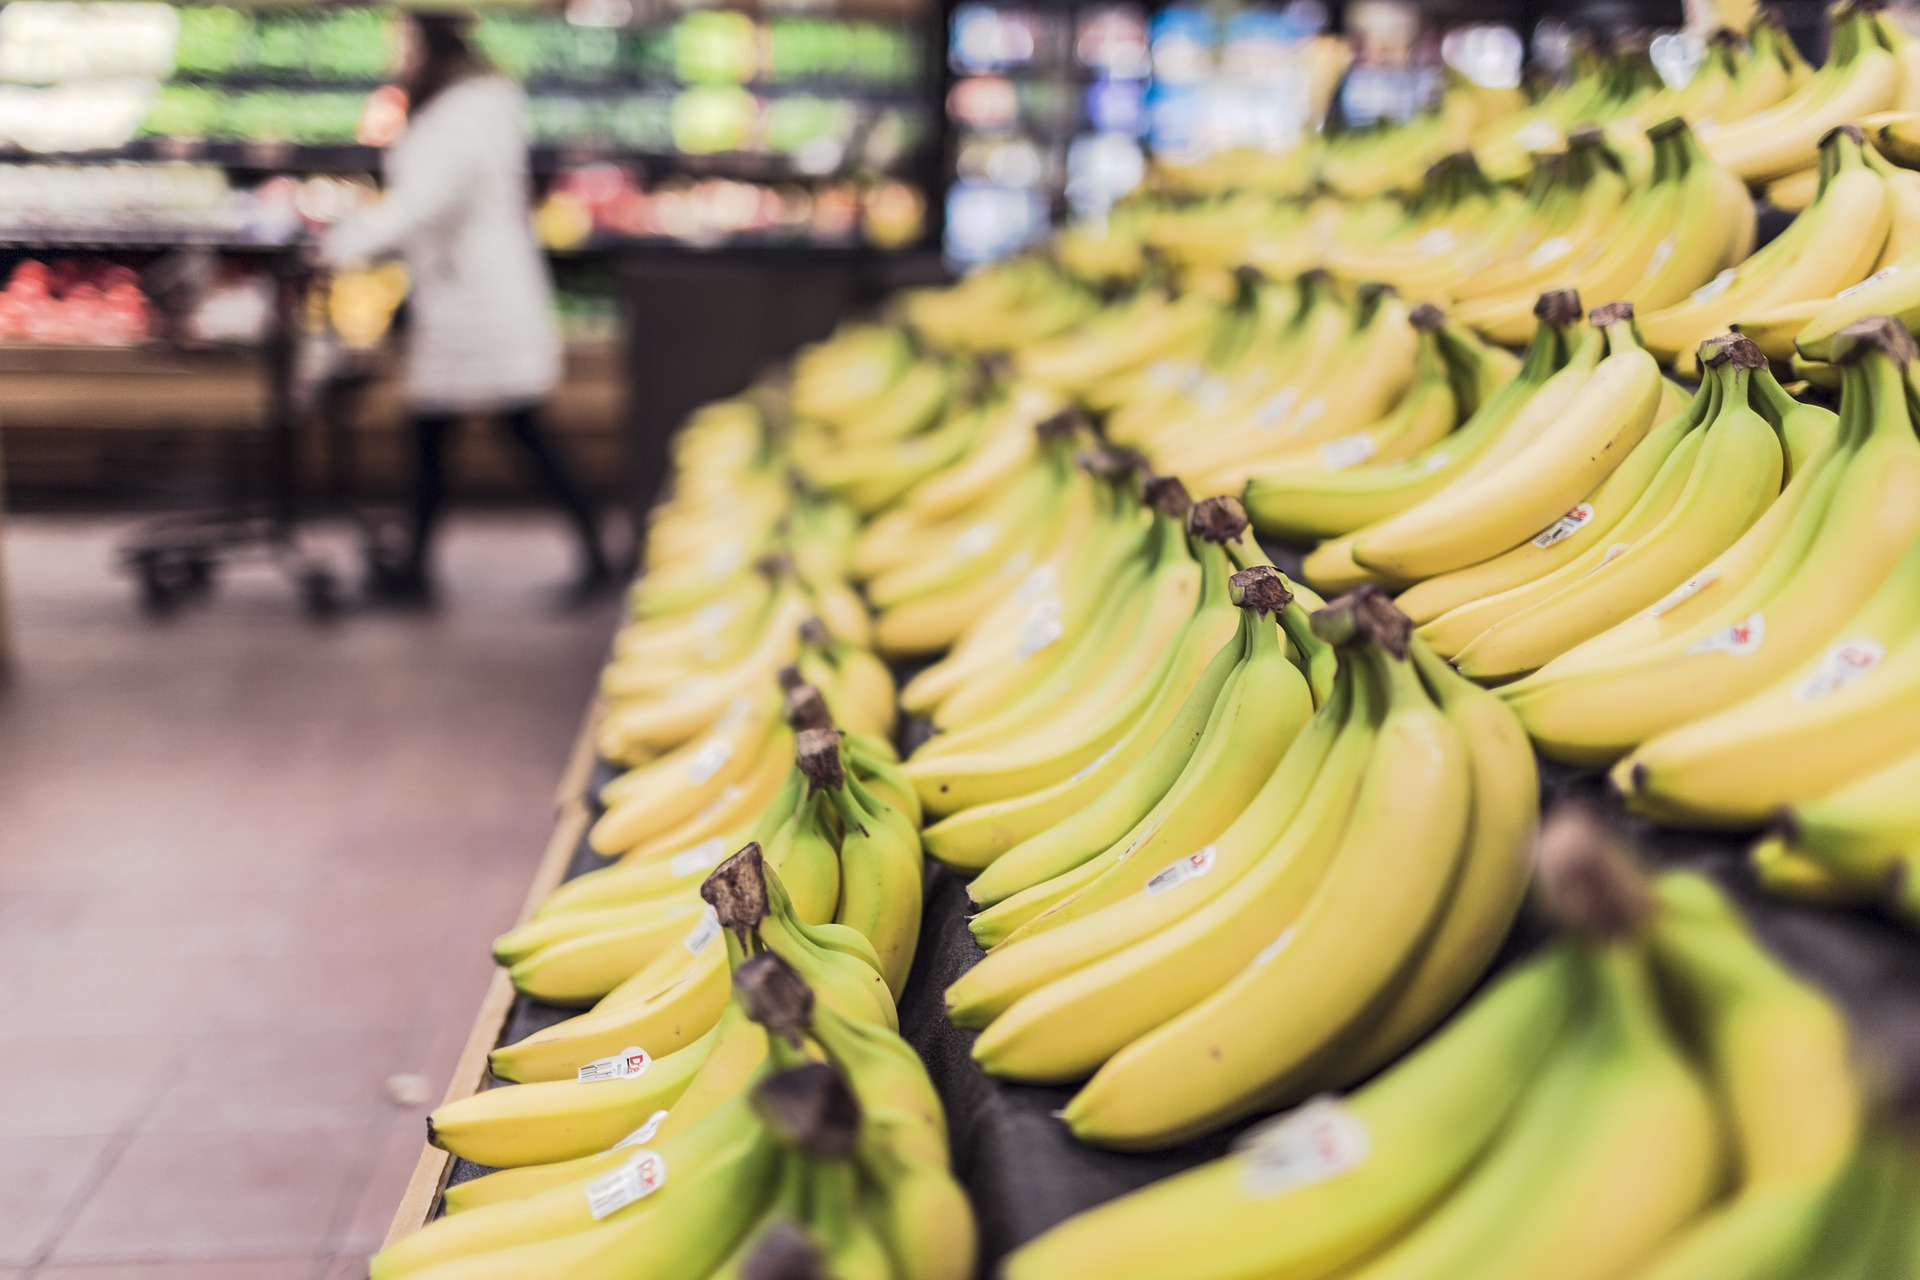 Supermarket loose bananas